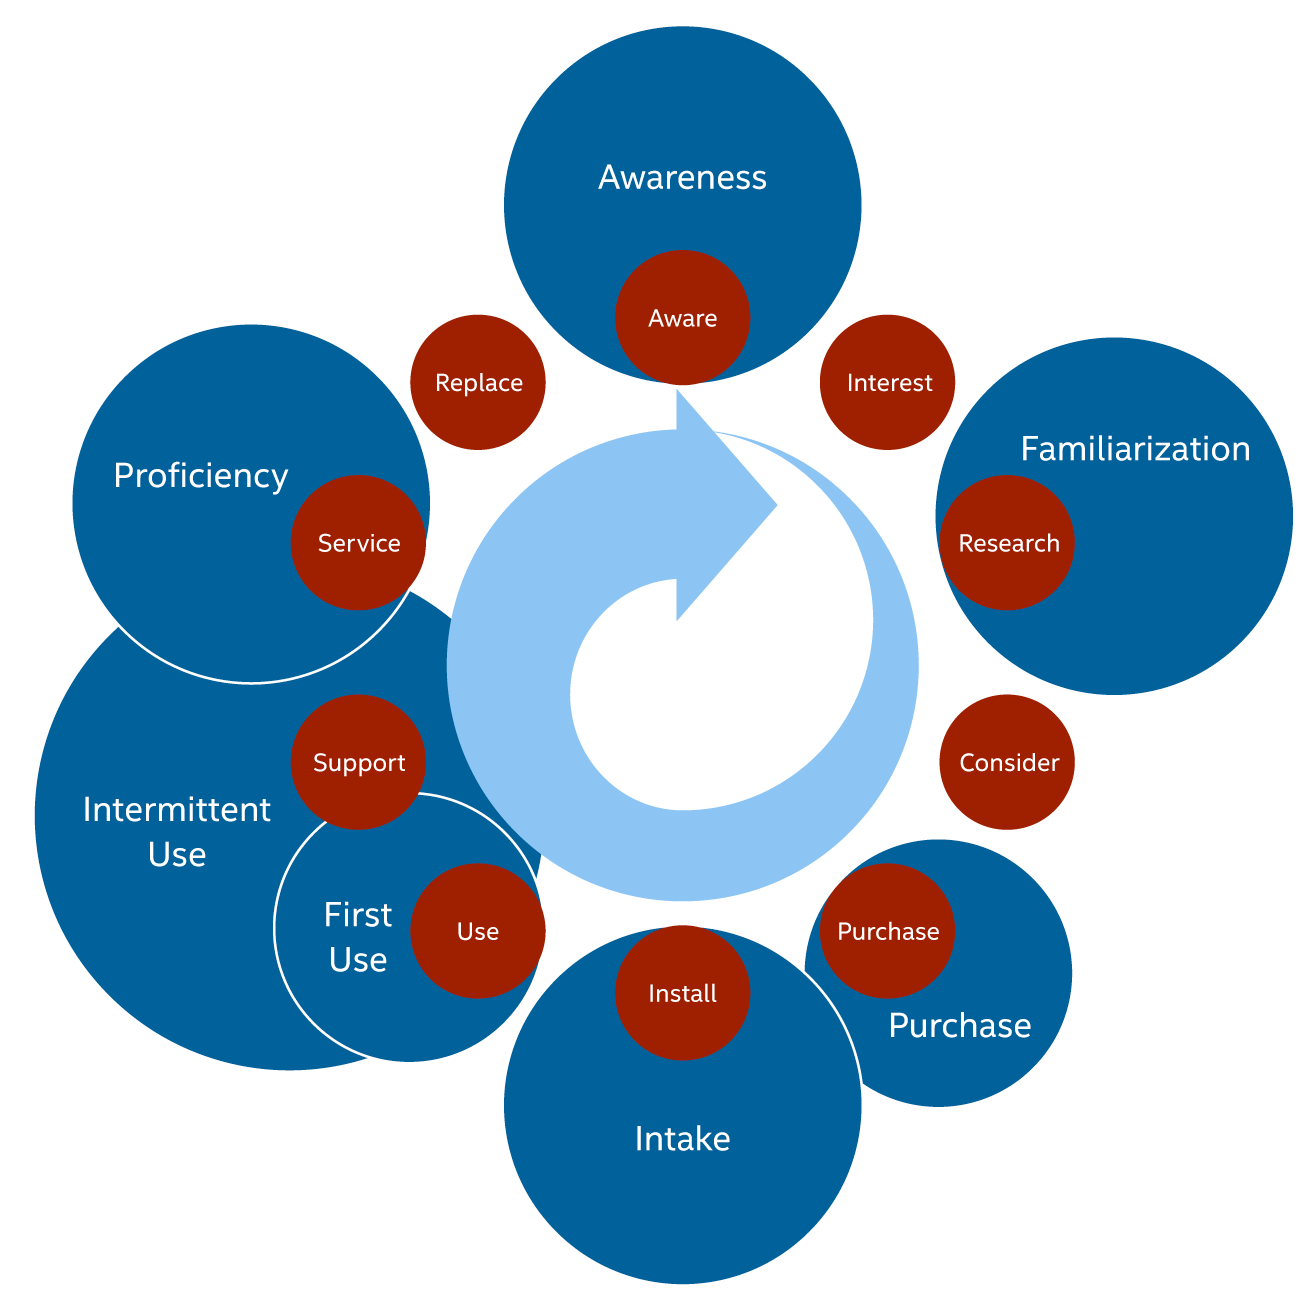 UX Lifecycle Map - six blue circles of varying size, on top of the original 10 red circles